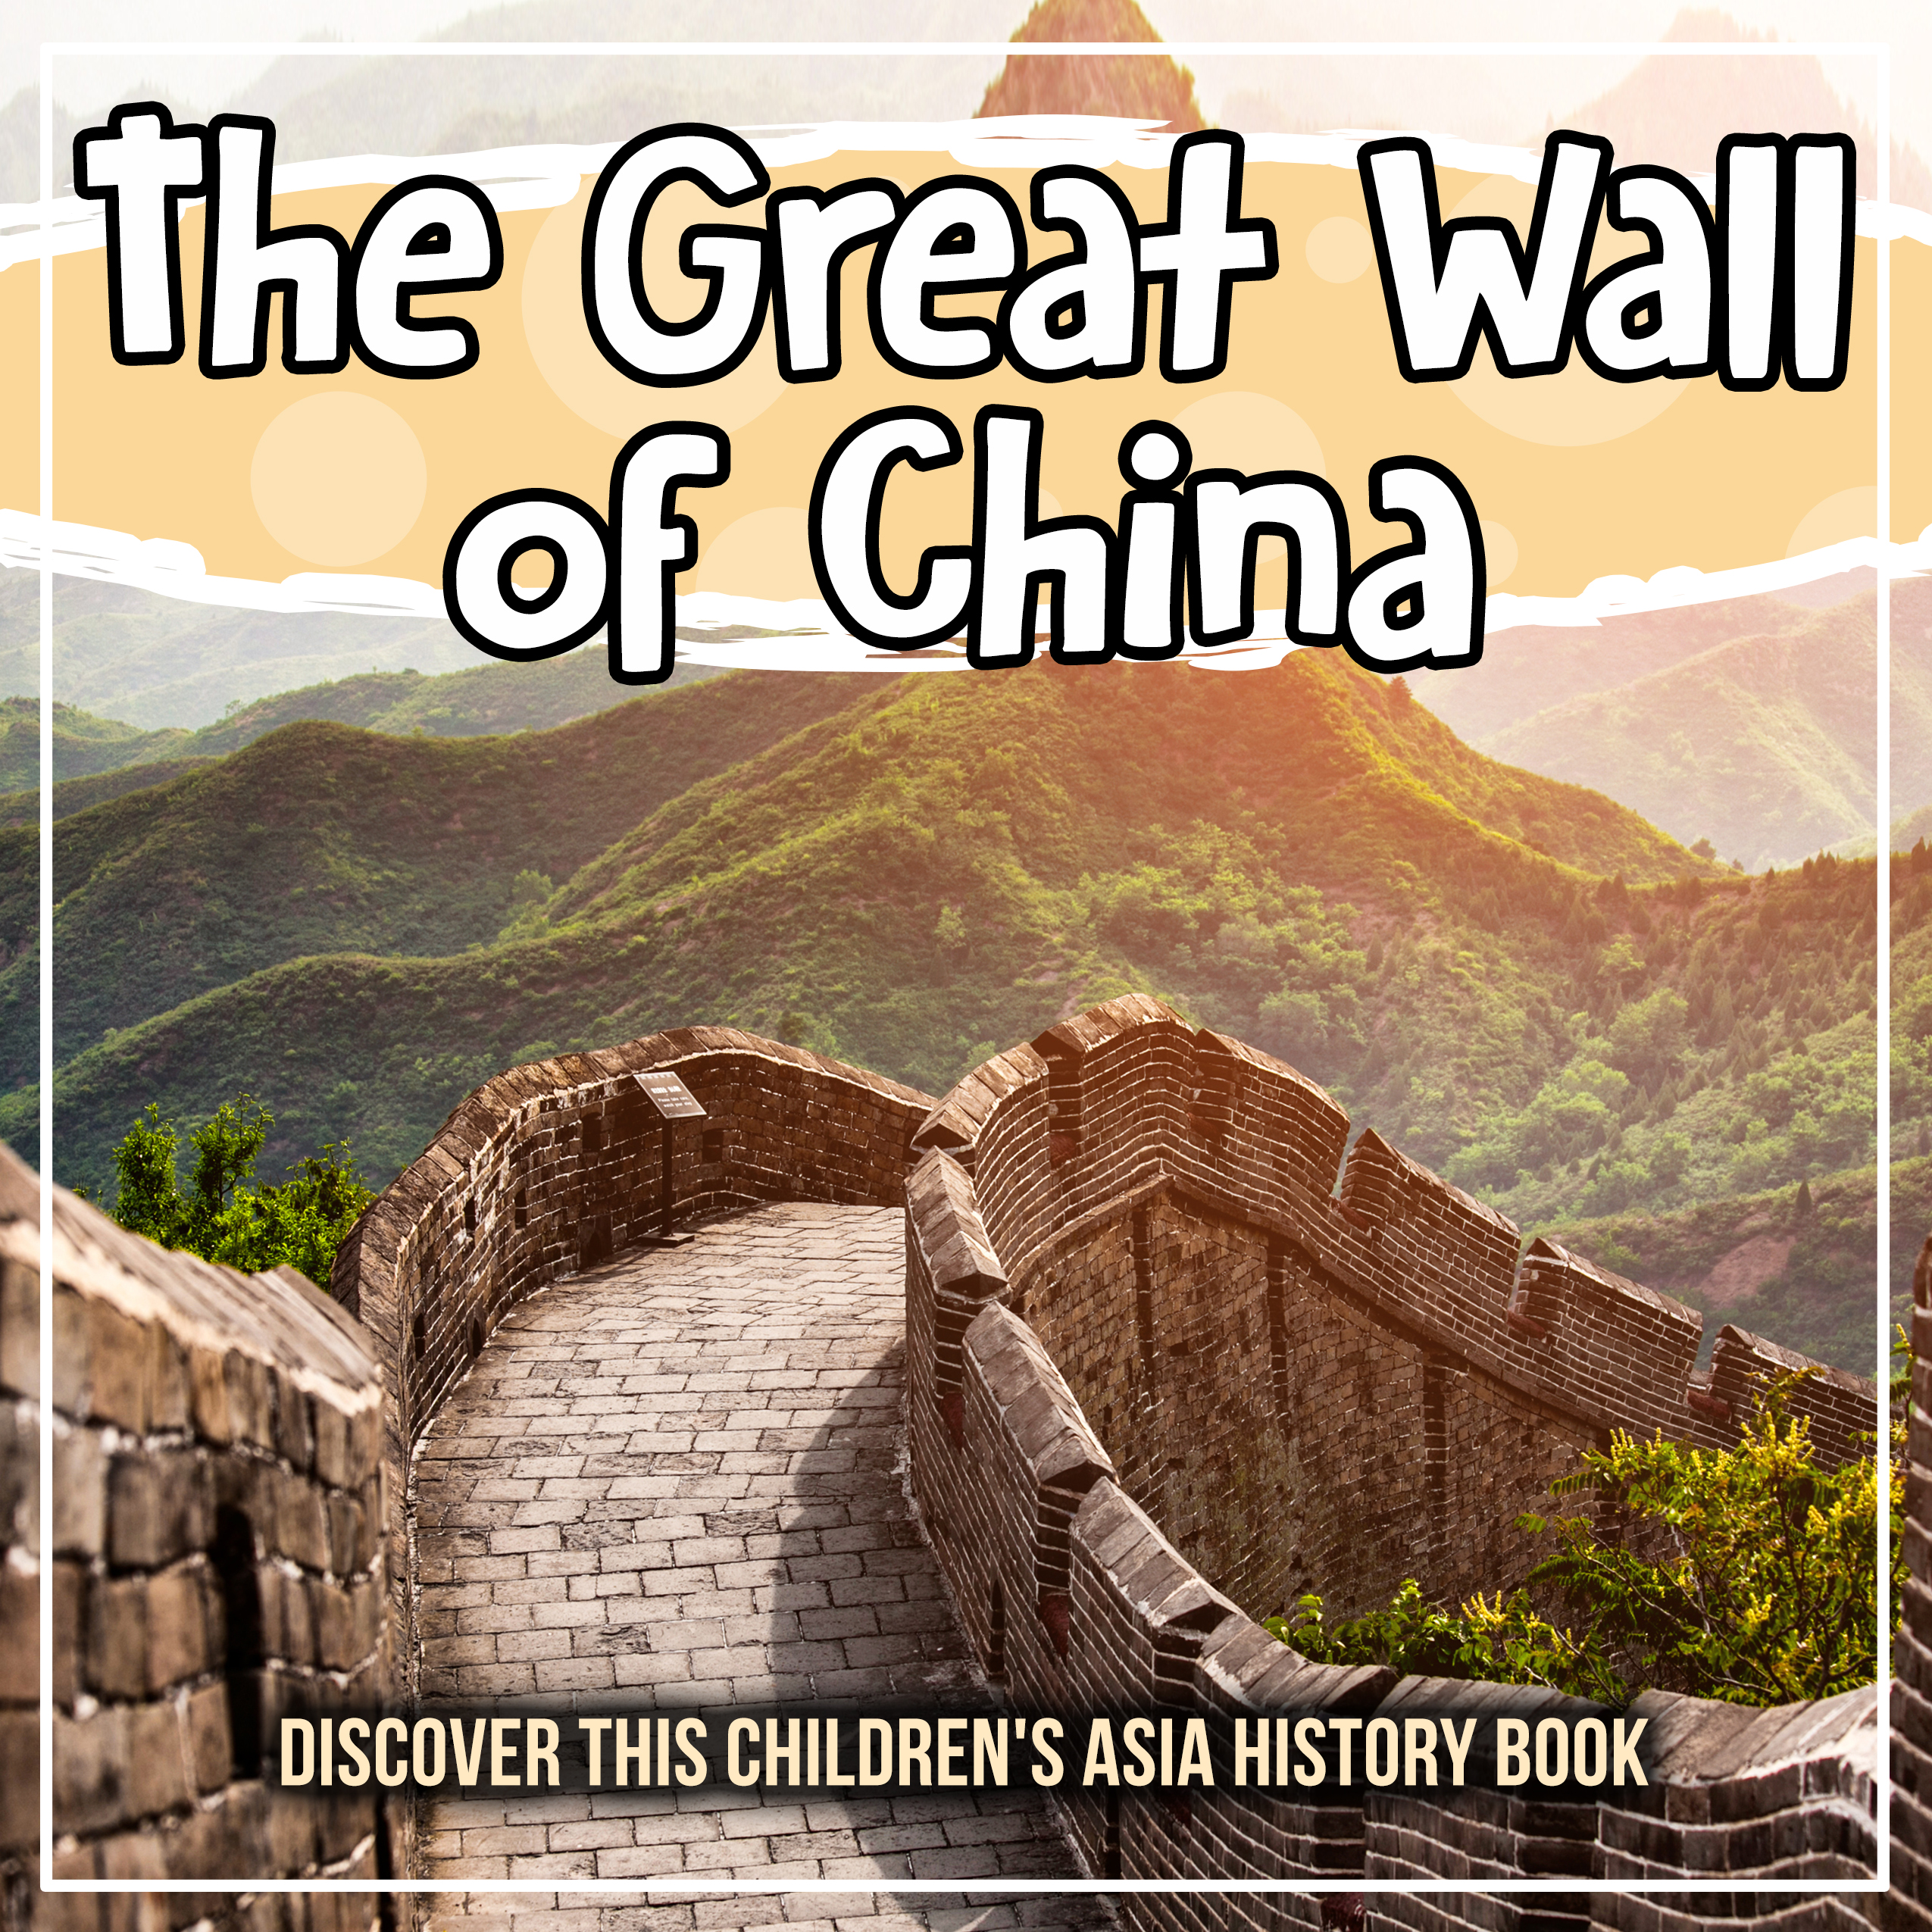 The Great Wall of China: Discover This Children's Asia History Book